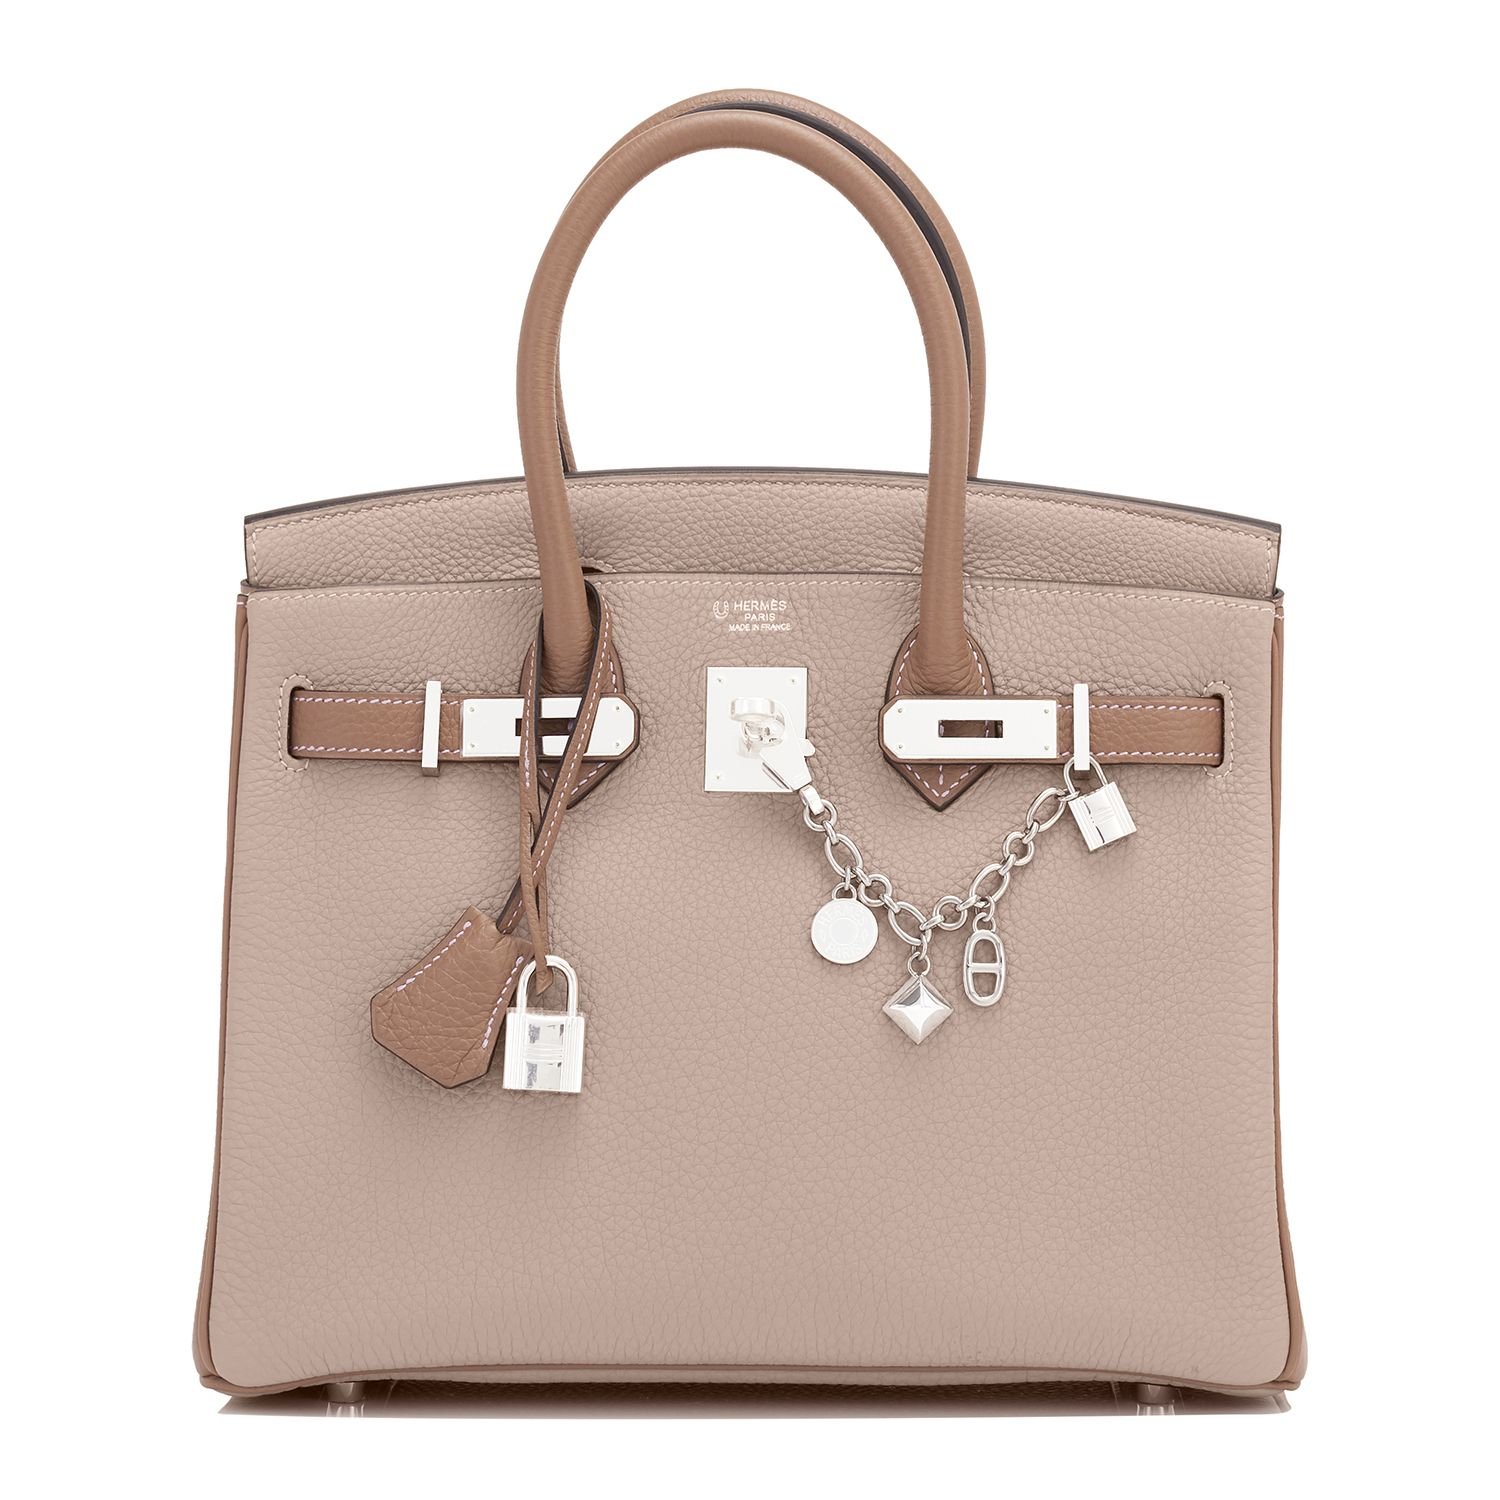 2d79c5372b89  Hermes  Birkin  Bag HSS Gris Tourterelle and Etoupe Palladium Hardware